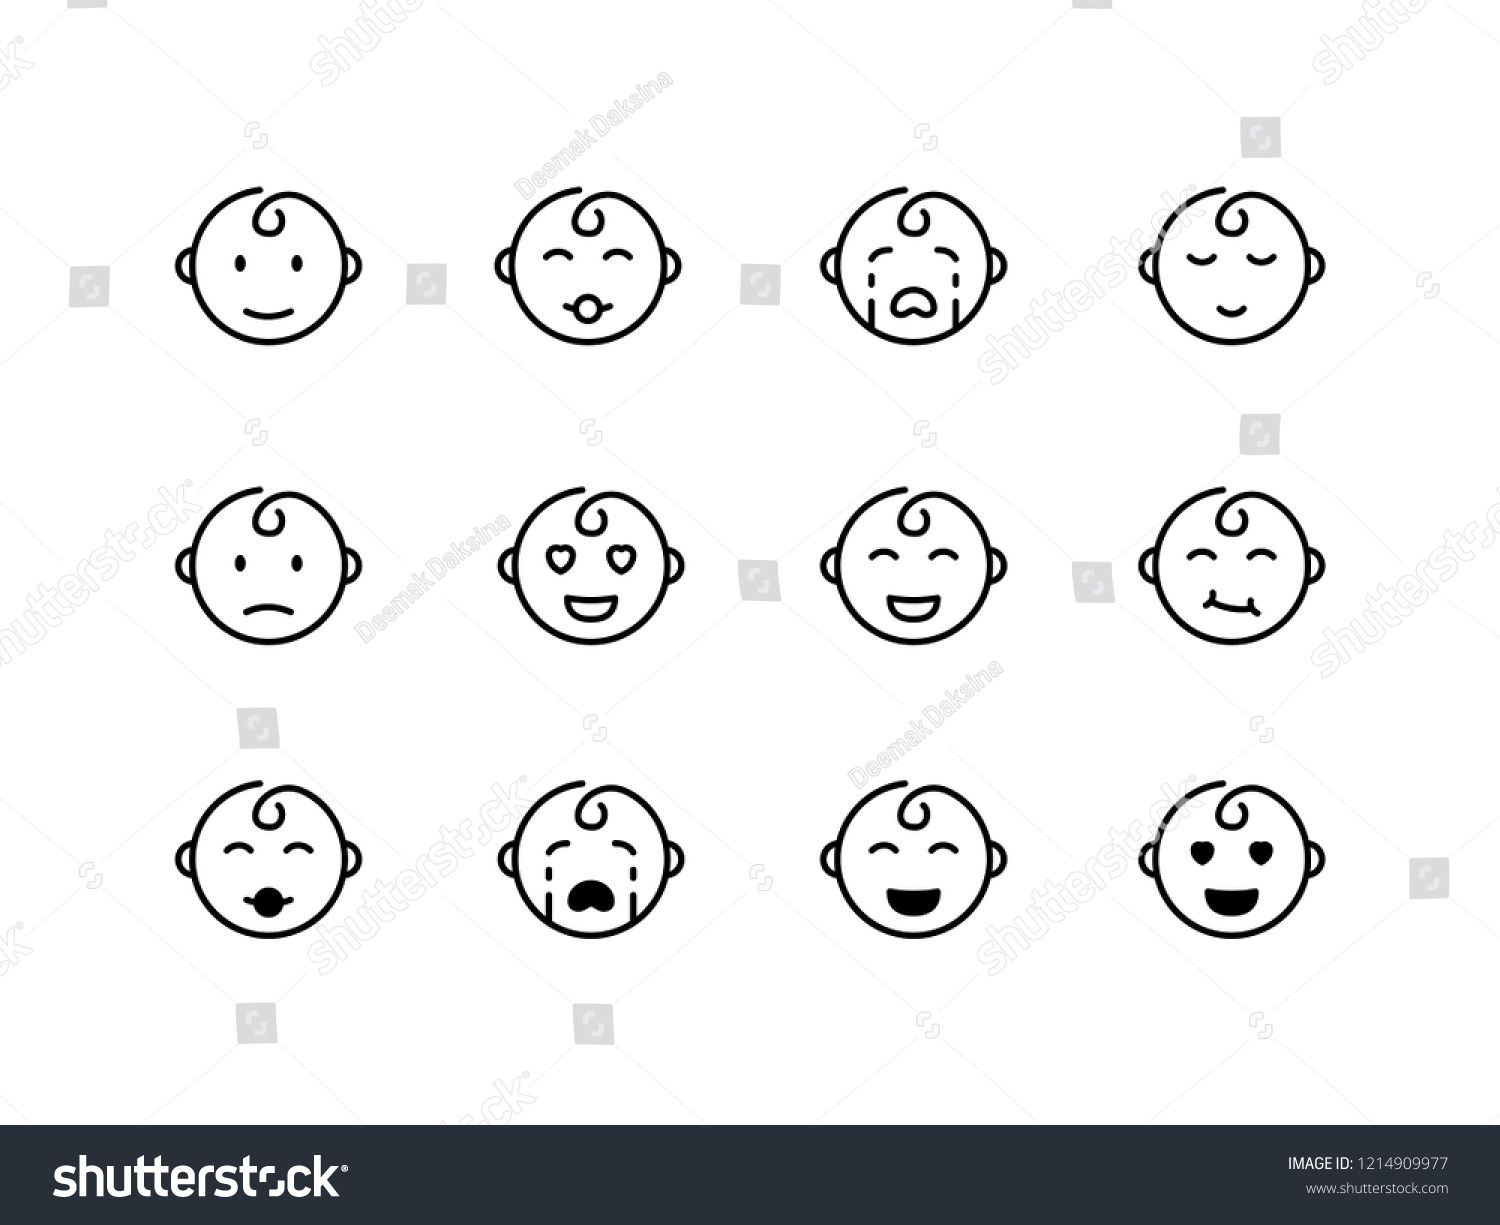 graphic black and white download Face icon design cute. Vector baby emotion